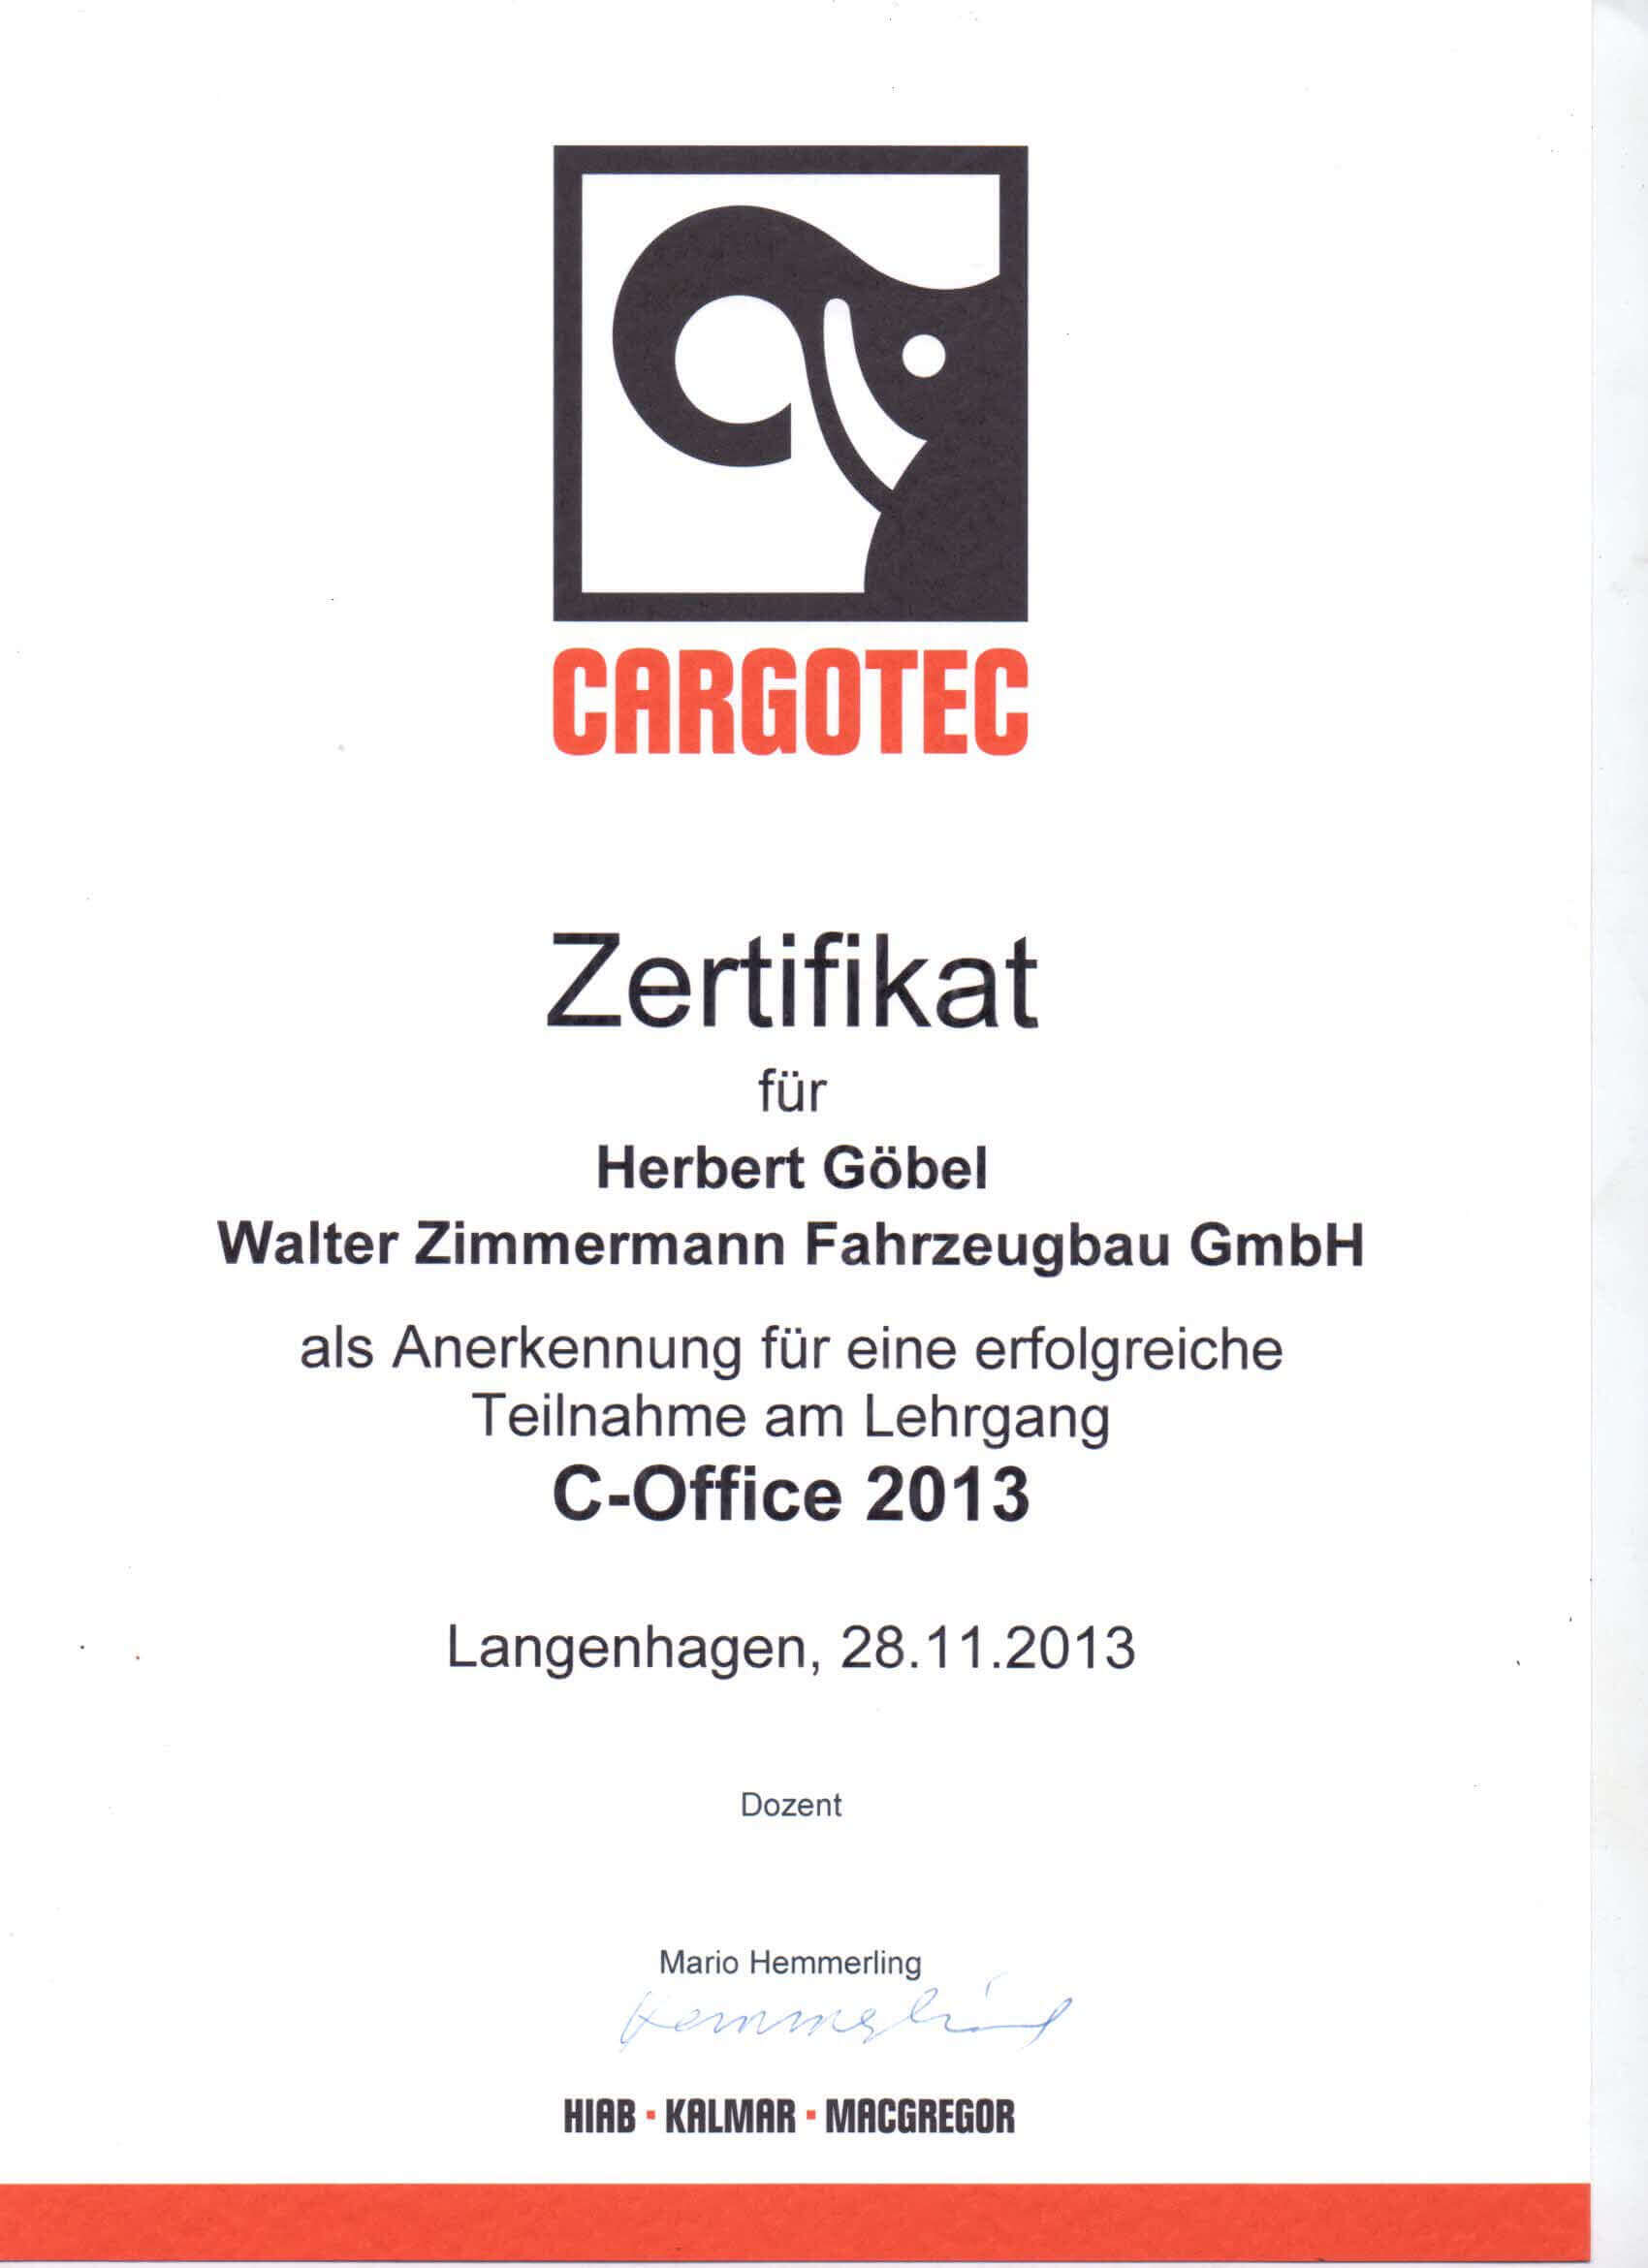 Zertifikat C-Office Göbel